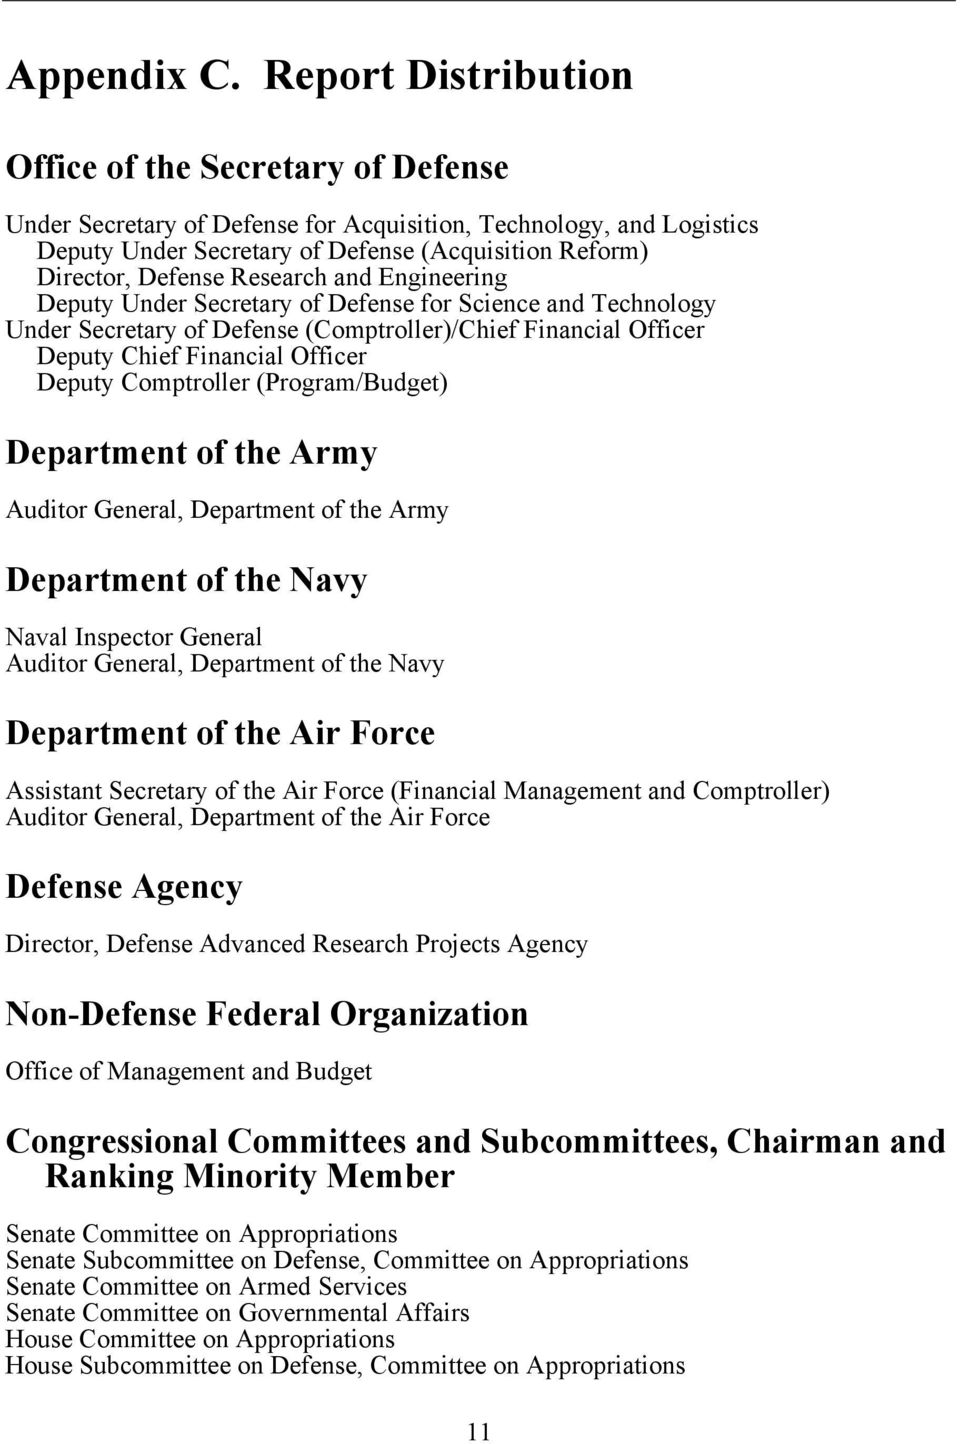 Research and Engineering Deputy Under Secretary of Defense for Science and Technology Under Secretary of Defense (Comptroller)/Chief Financial Officer Deputy Chief Financial Officer Deputy